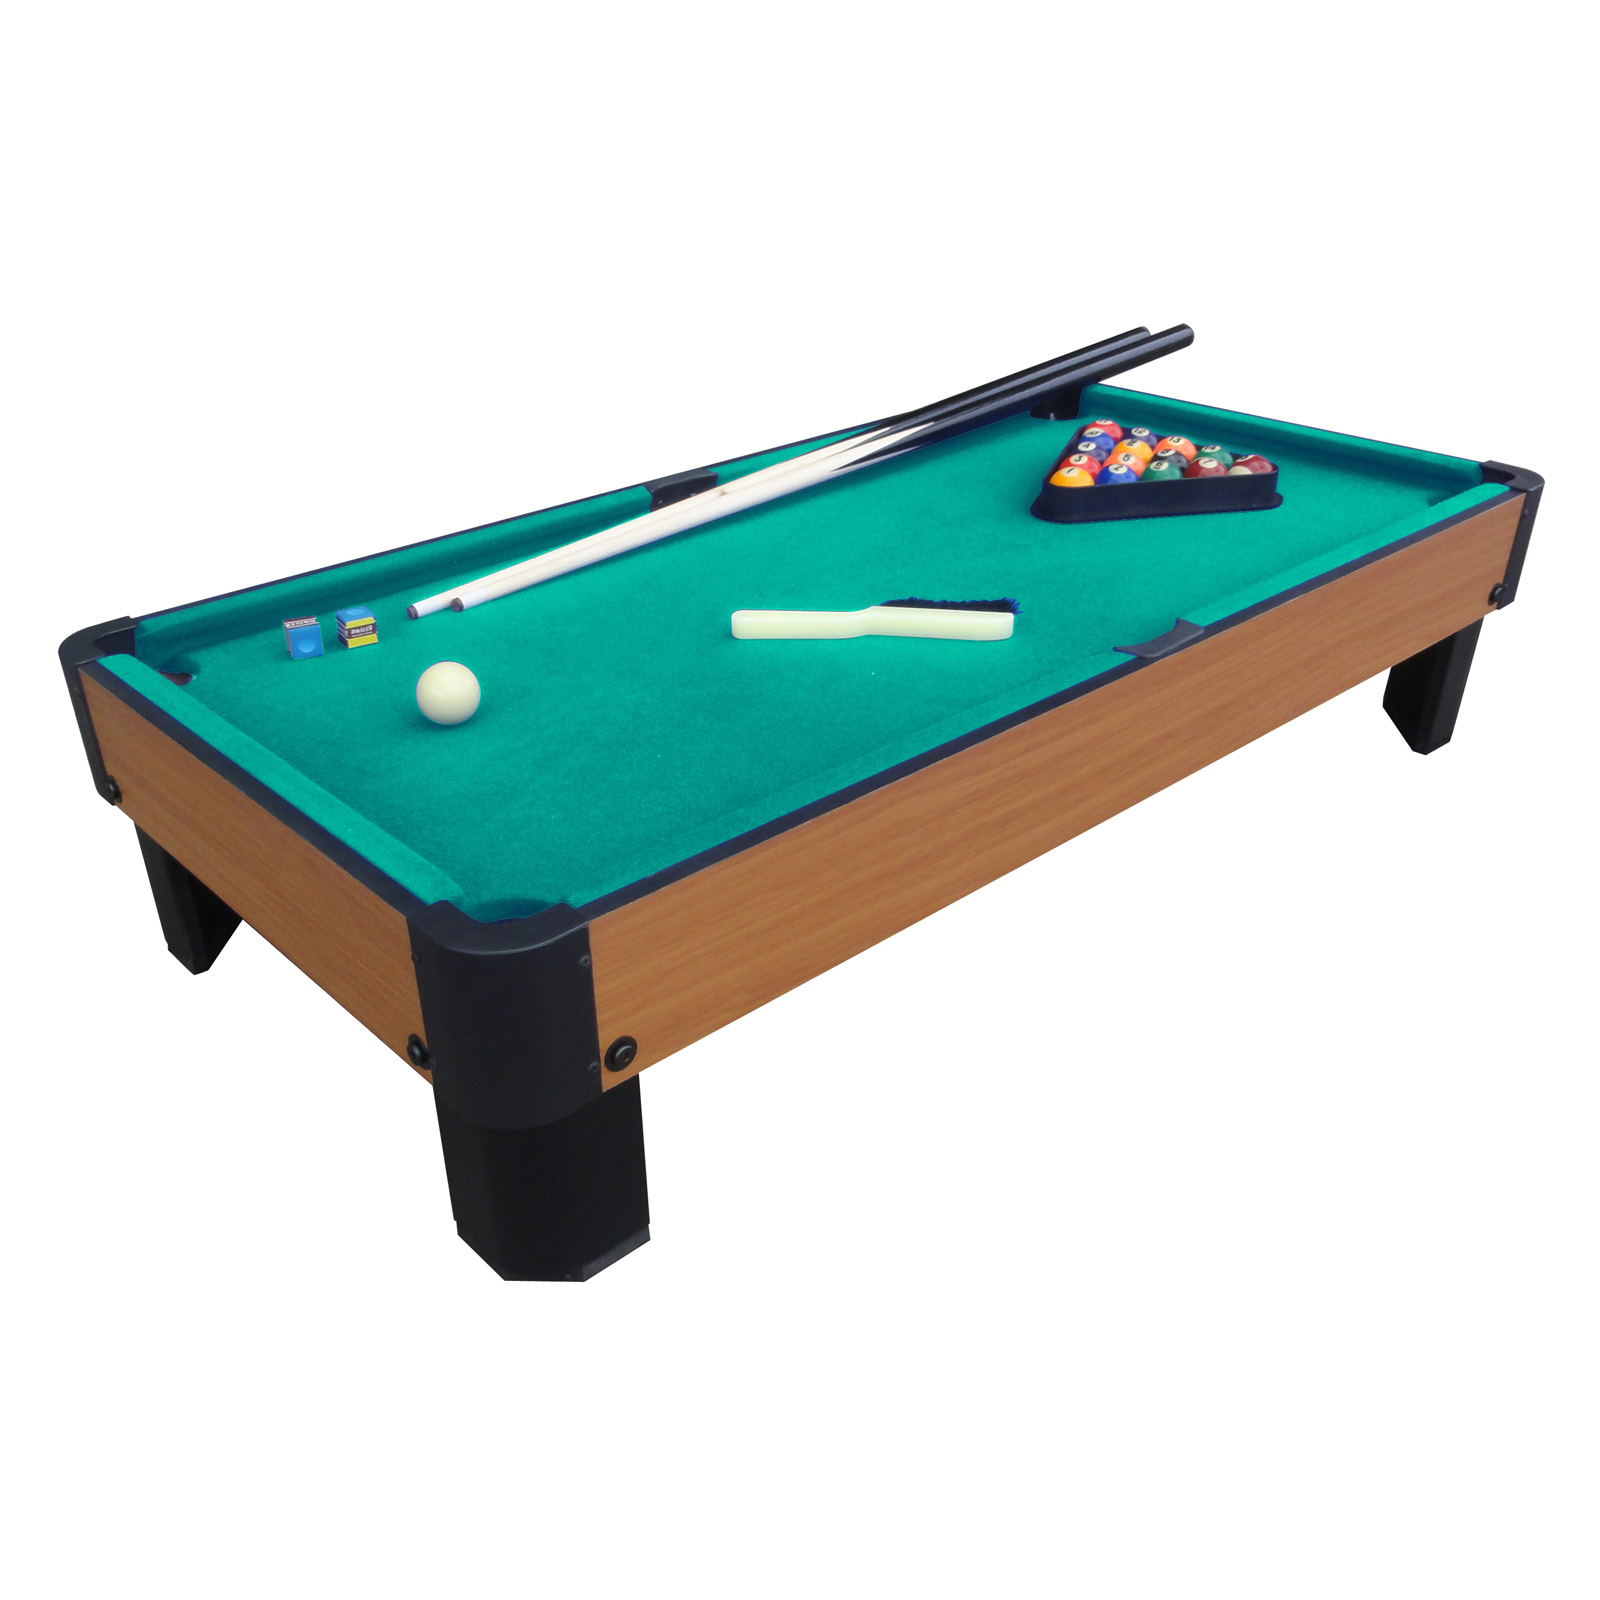 Trademark Games In Mini Table Top Pool Table With Accessories - Where to buy mini pool table